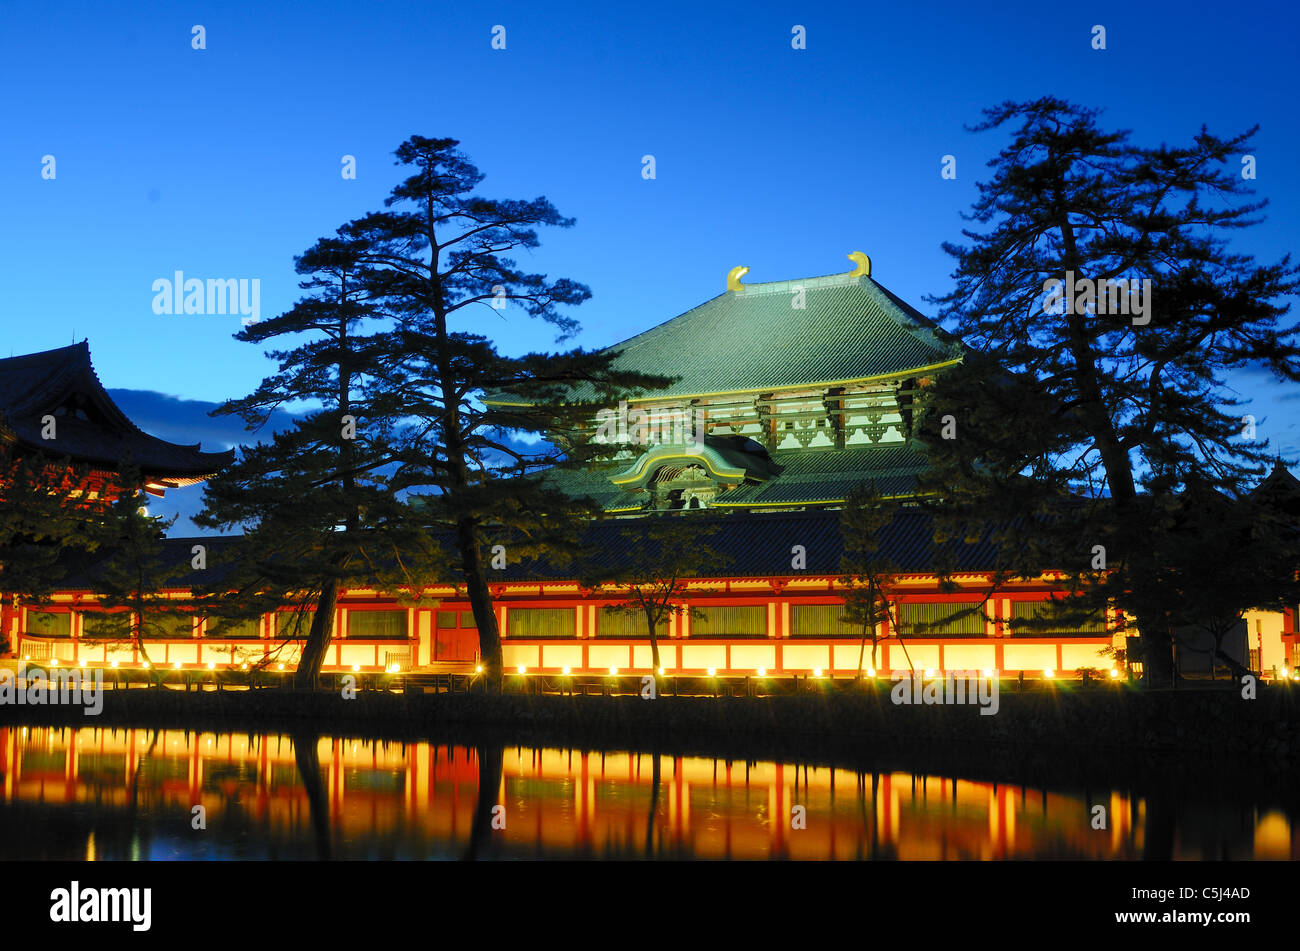 Exterior of Todaiji, the world's largest wooden building and a UNESCO World Heritage Site in Nara, Japan. - Stock Image